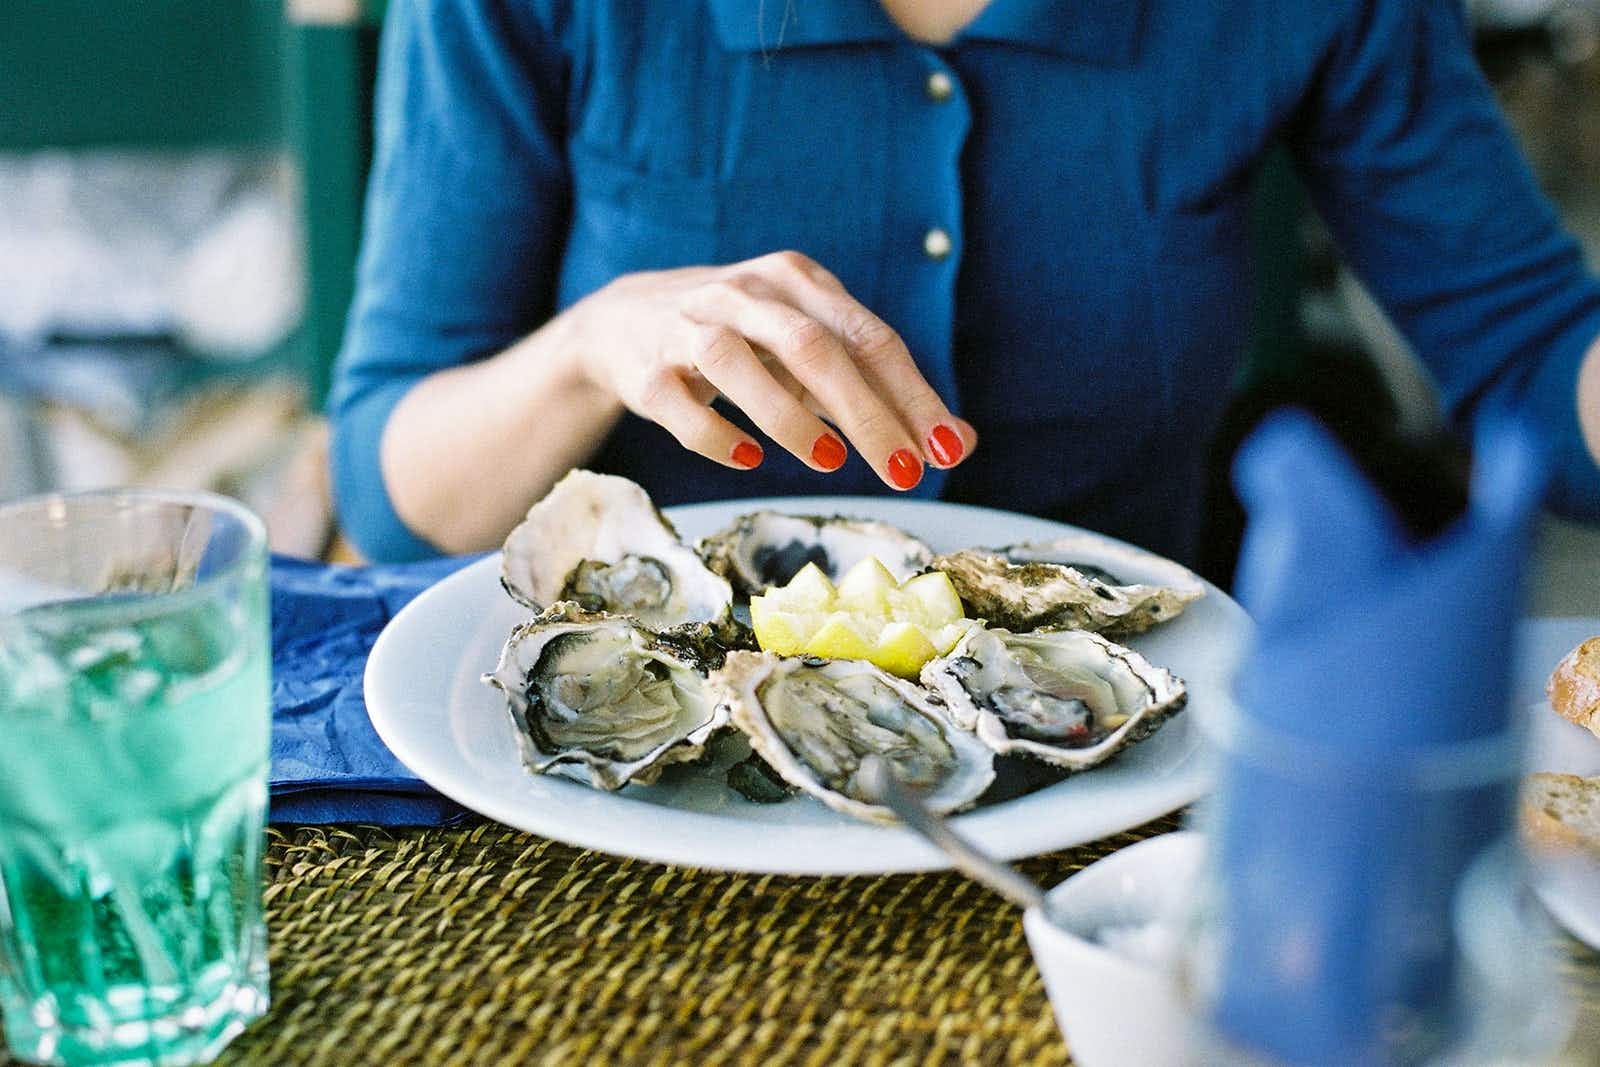 Follow Virginia's oyster trail for a taste of the region's most delectable offerings © Martin Rettenbacher / Getty Images